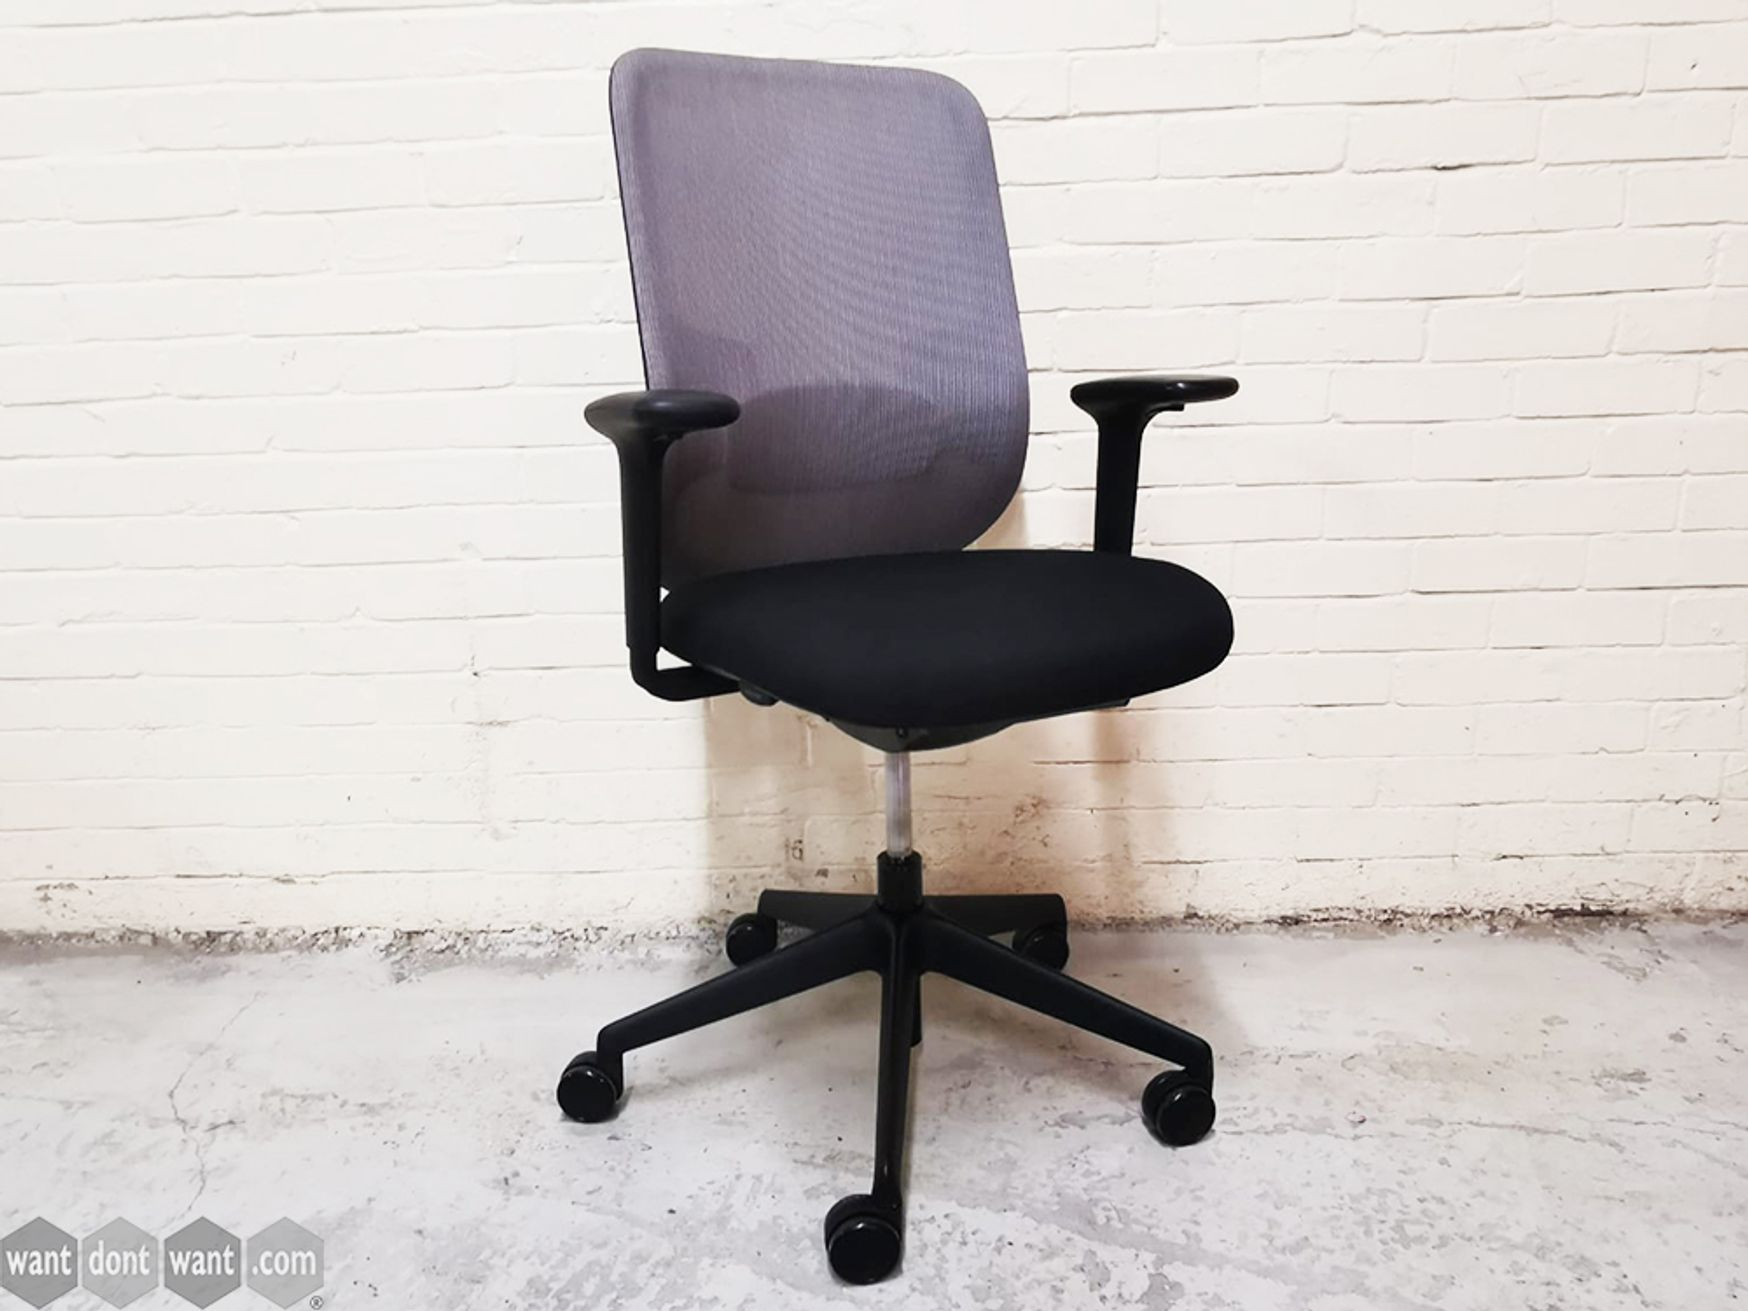 Used Orangebox Do Operator Chairs with Newly Re-upholstered Black Fabric Seats